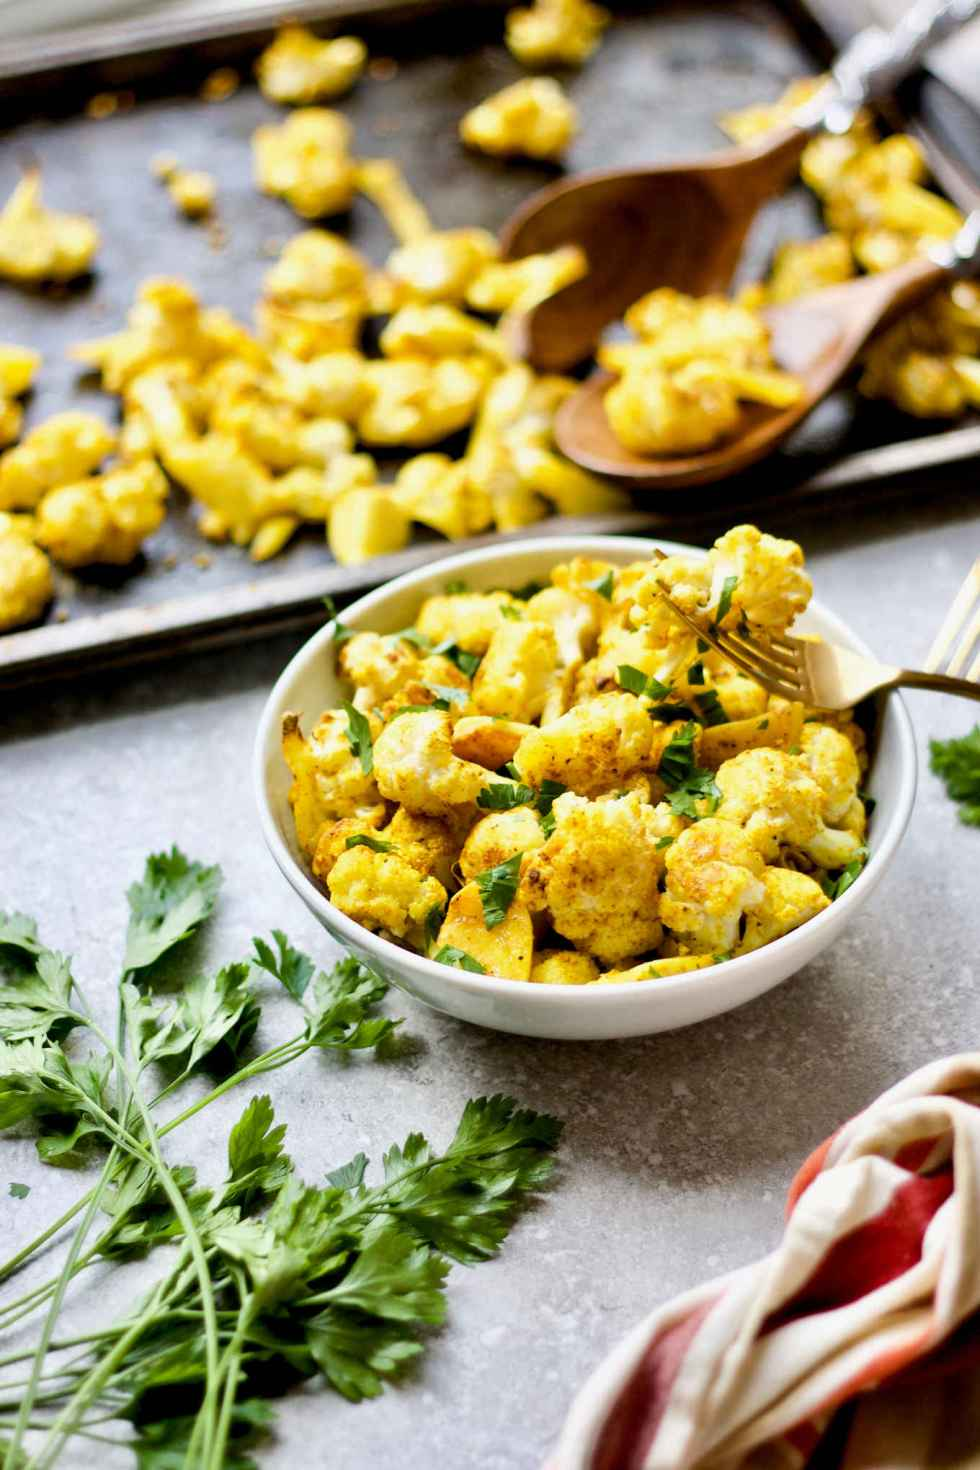 Garlic turmeric roasted cauliflower served in a bowl. The turmeric and garlic gives the roasted cauliflower an anti-inflammatory and immune boost.